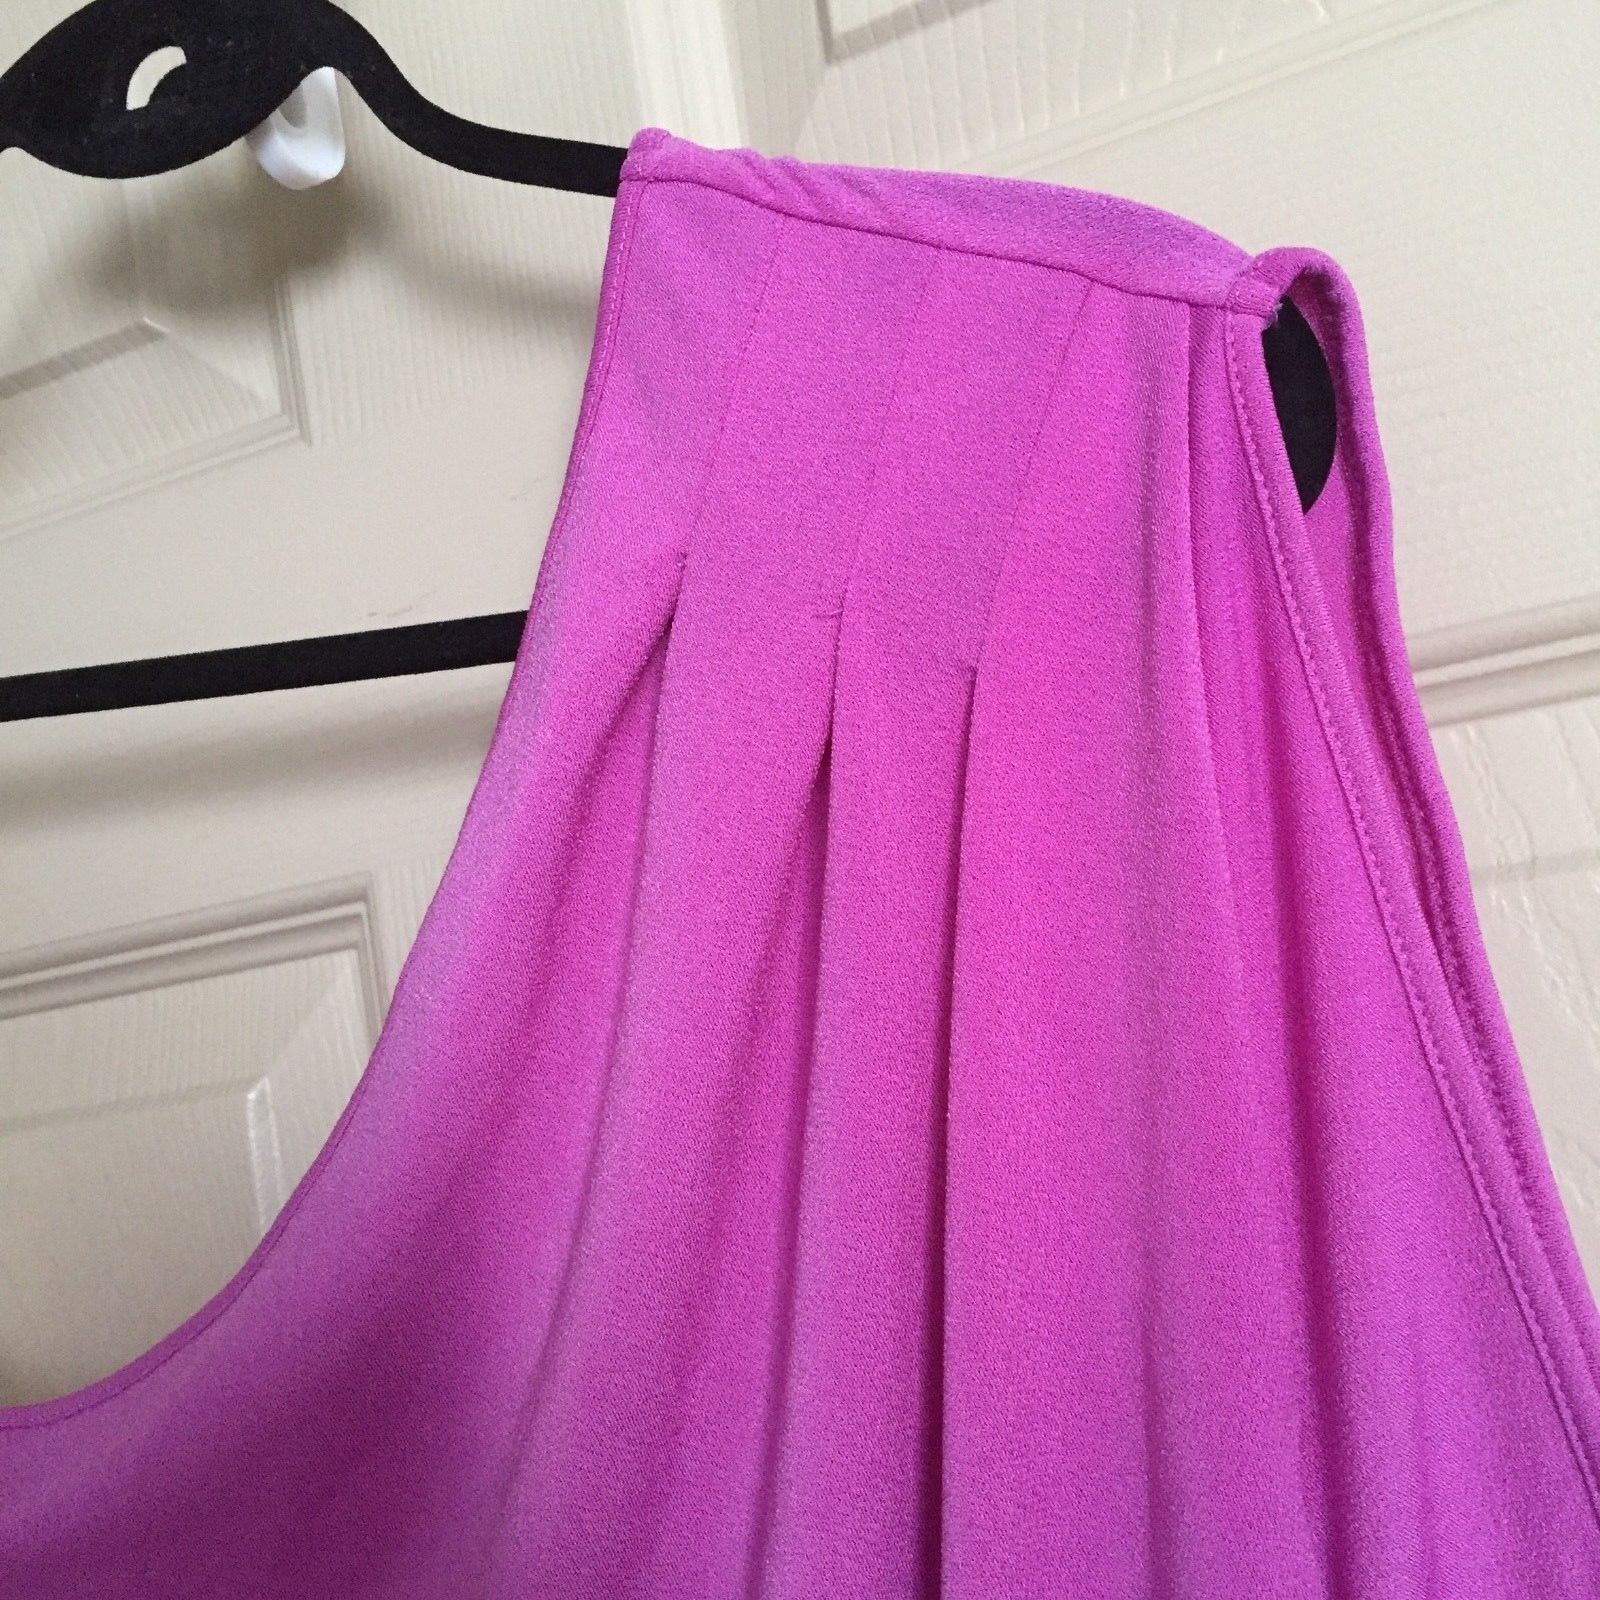 Express Women Top Blouse Size Large Pink One Shoulder One Sleeve Trendy New image 5